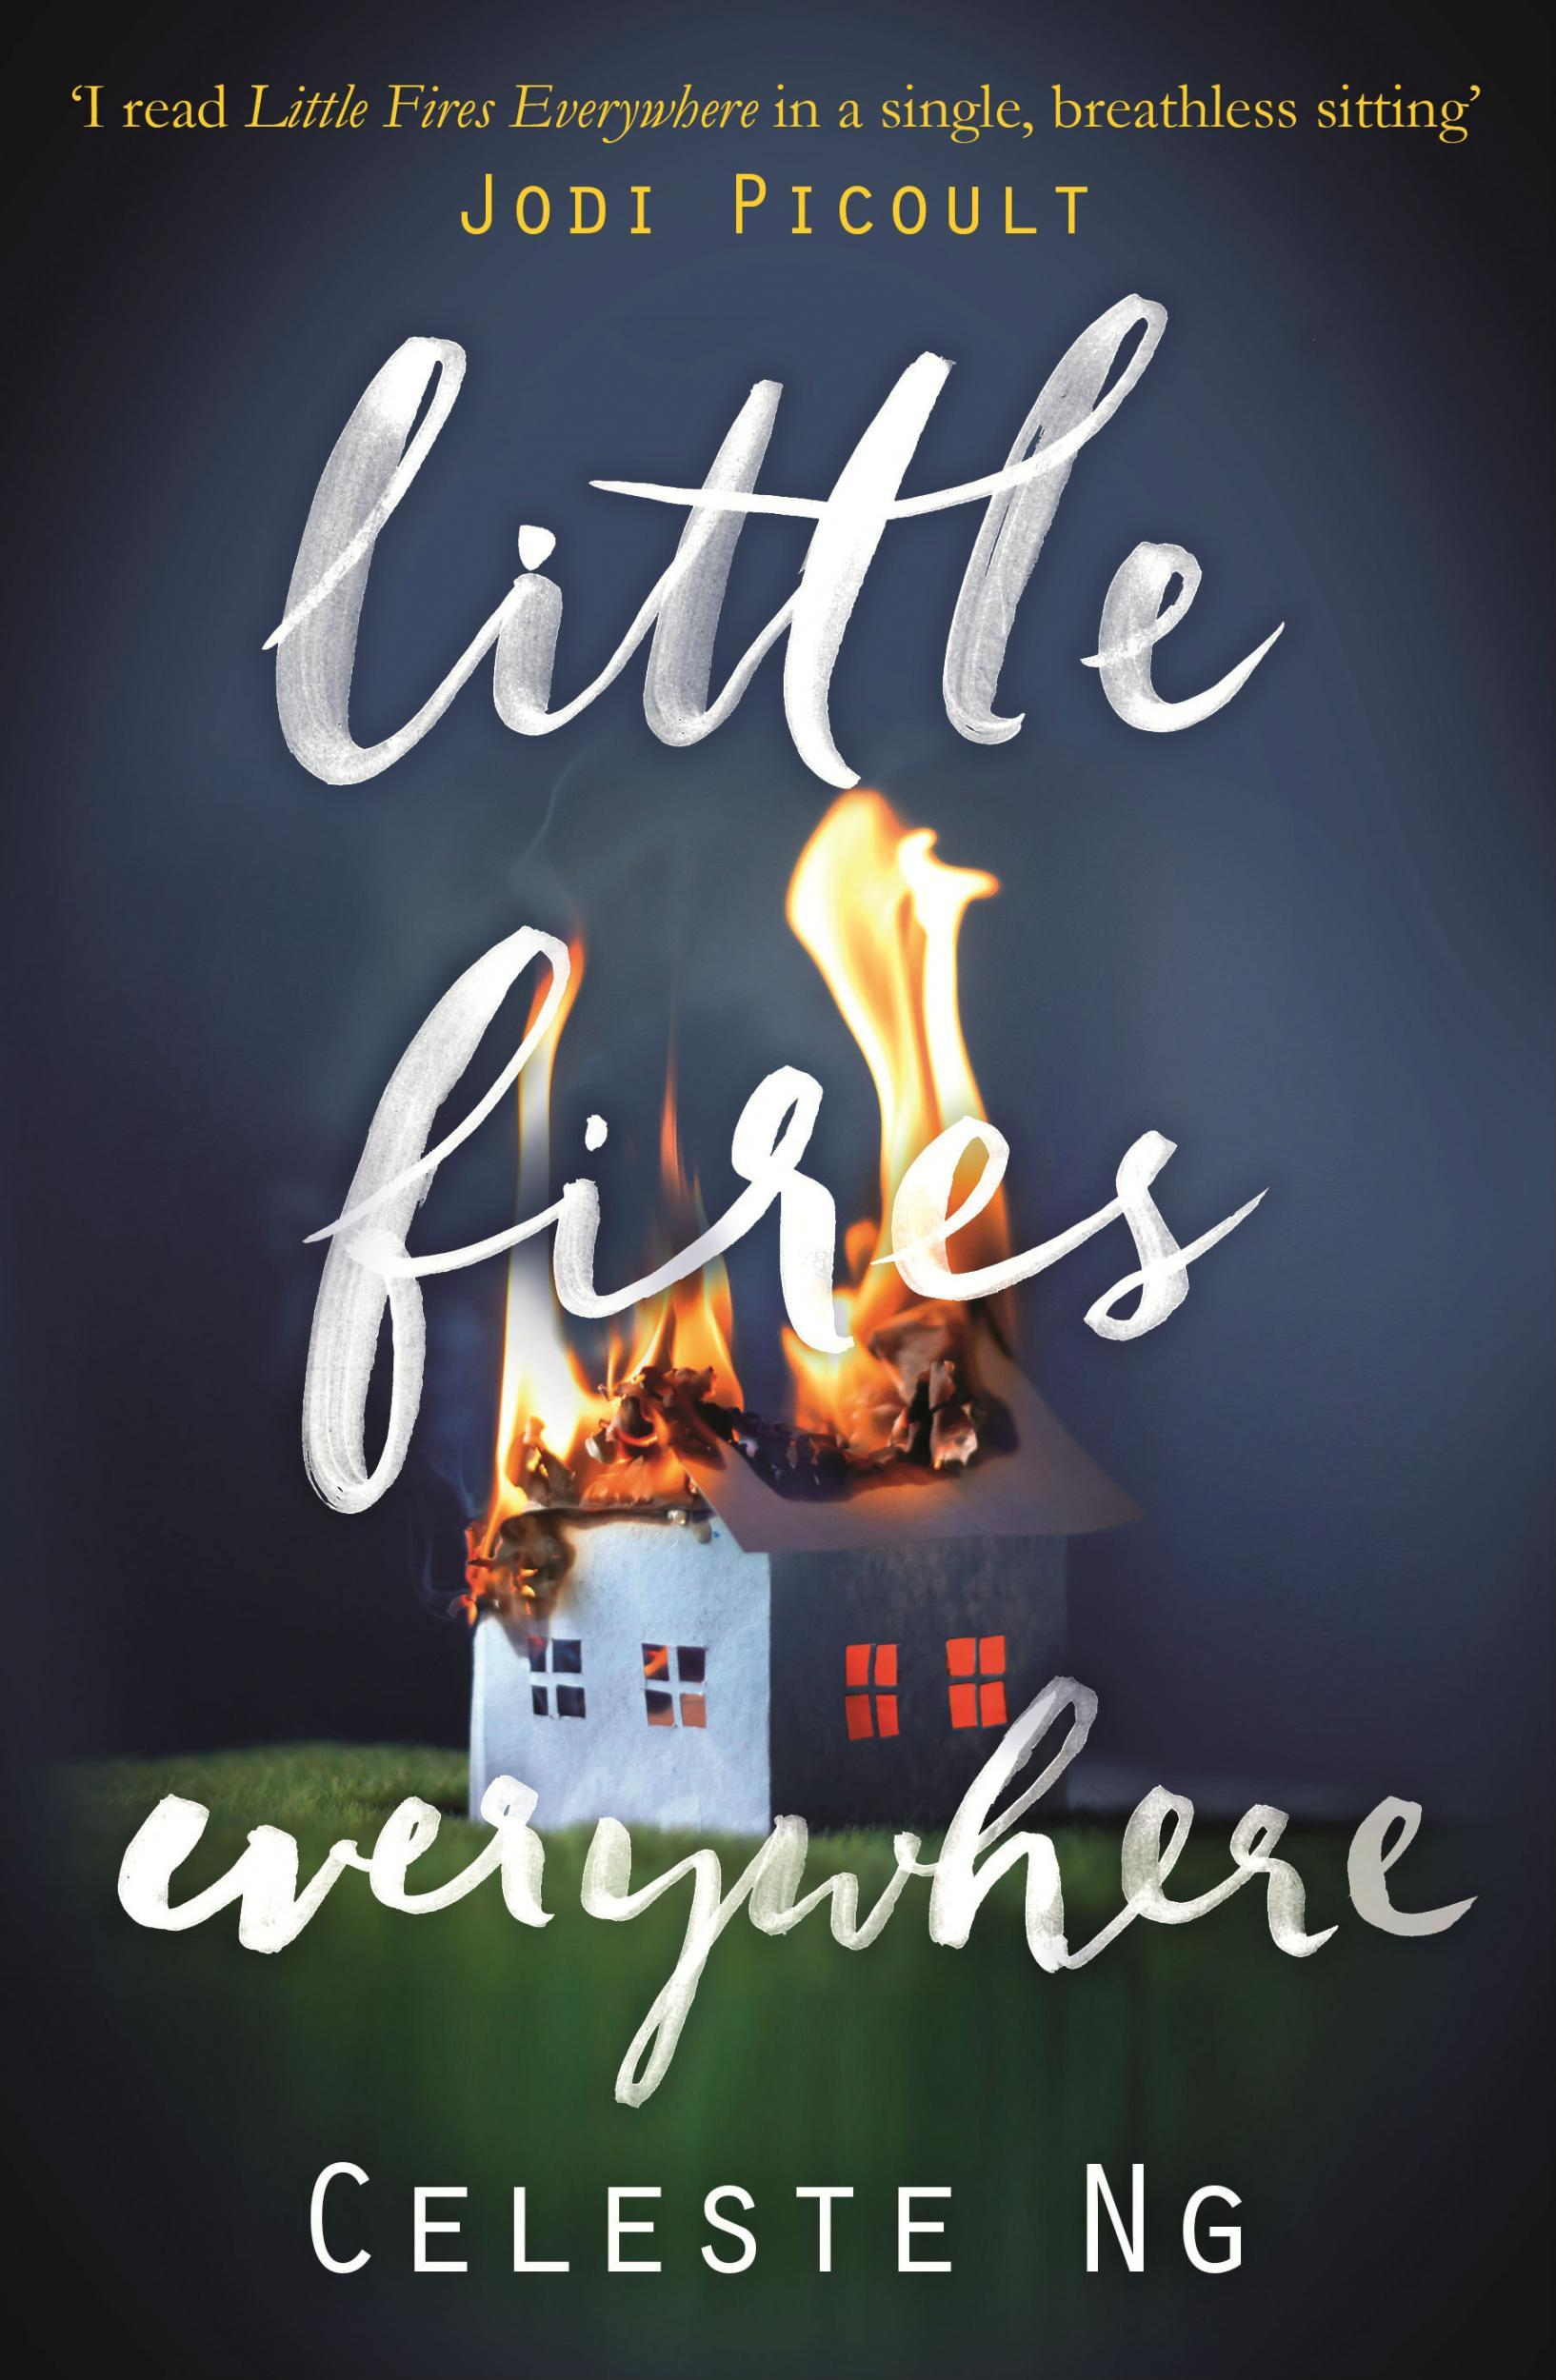 Little Fires Everywhere by Celest Ng. ISBN: 9780143135166 Publisher: Penguin Books